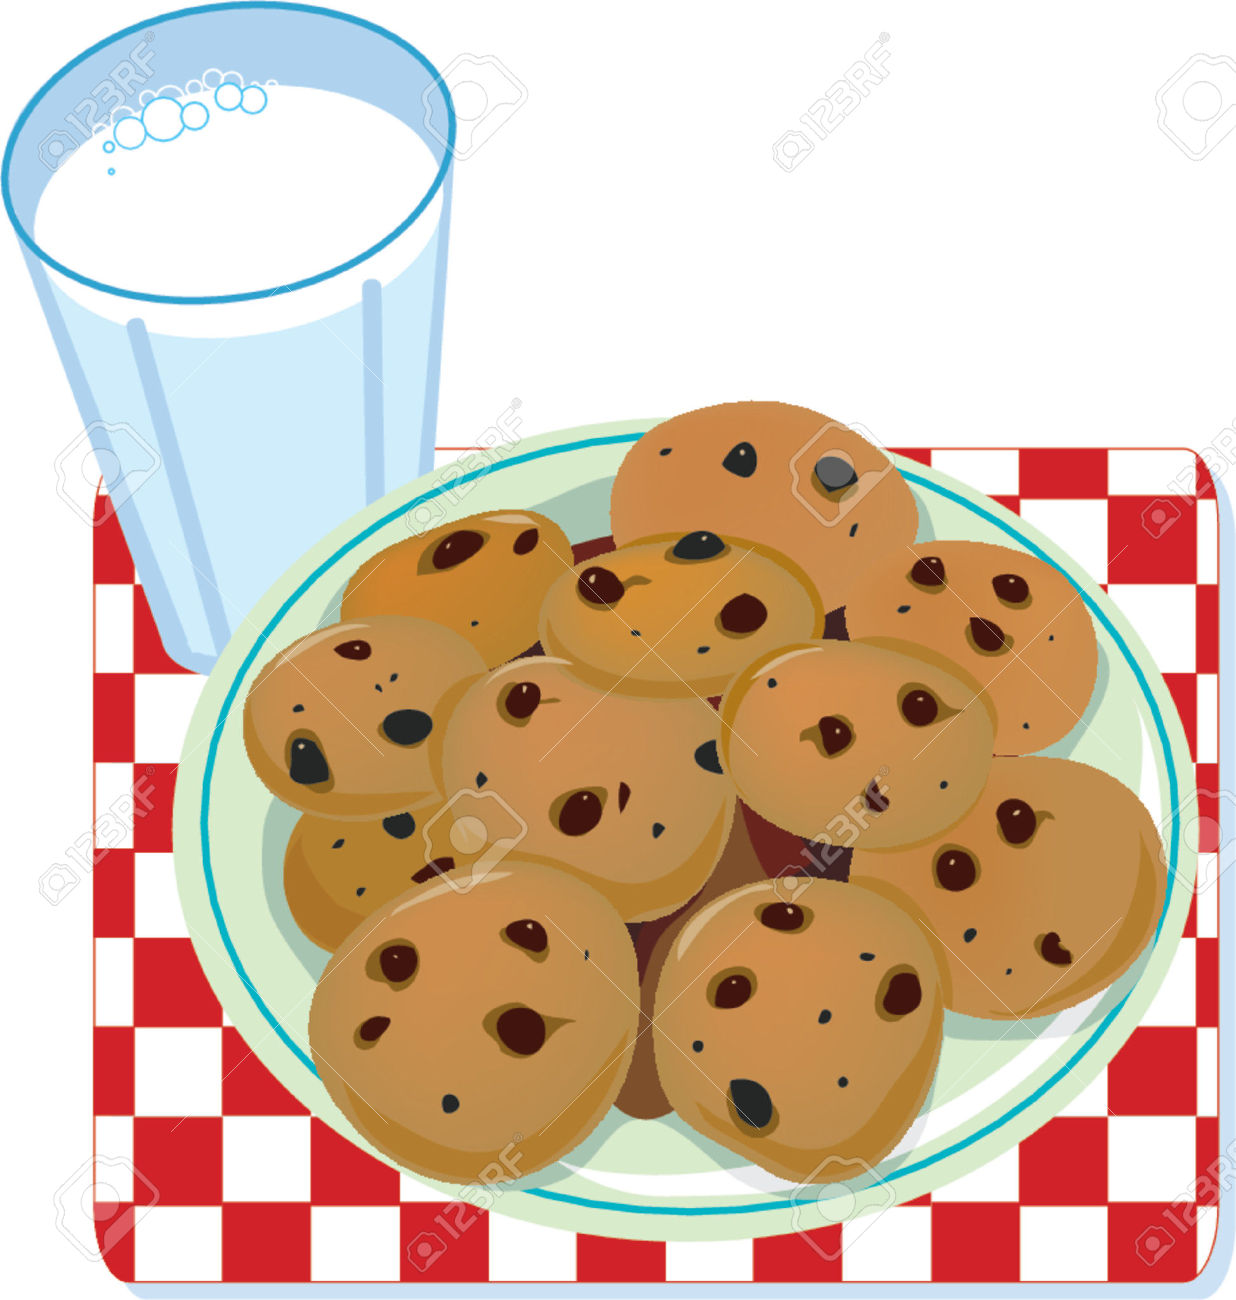 Best of cookies clipartion. Cookie clipart plate cookie